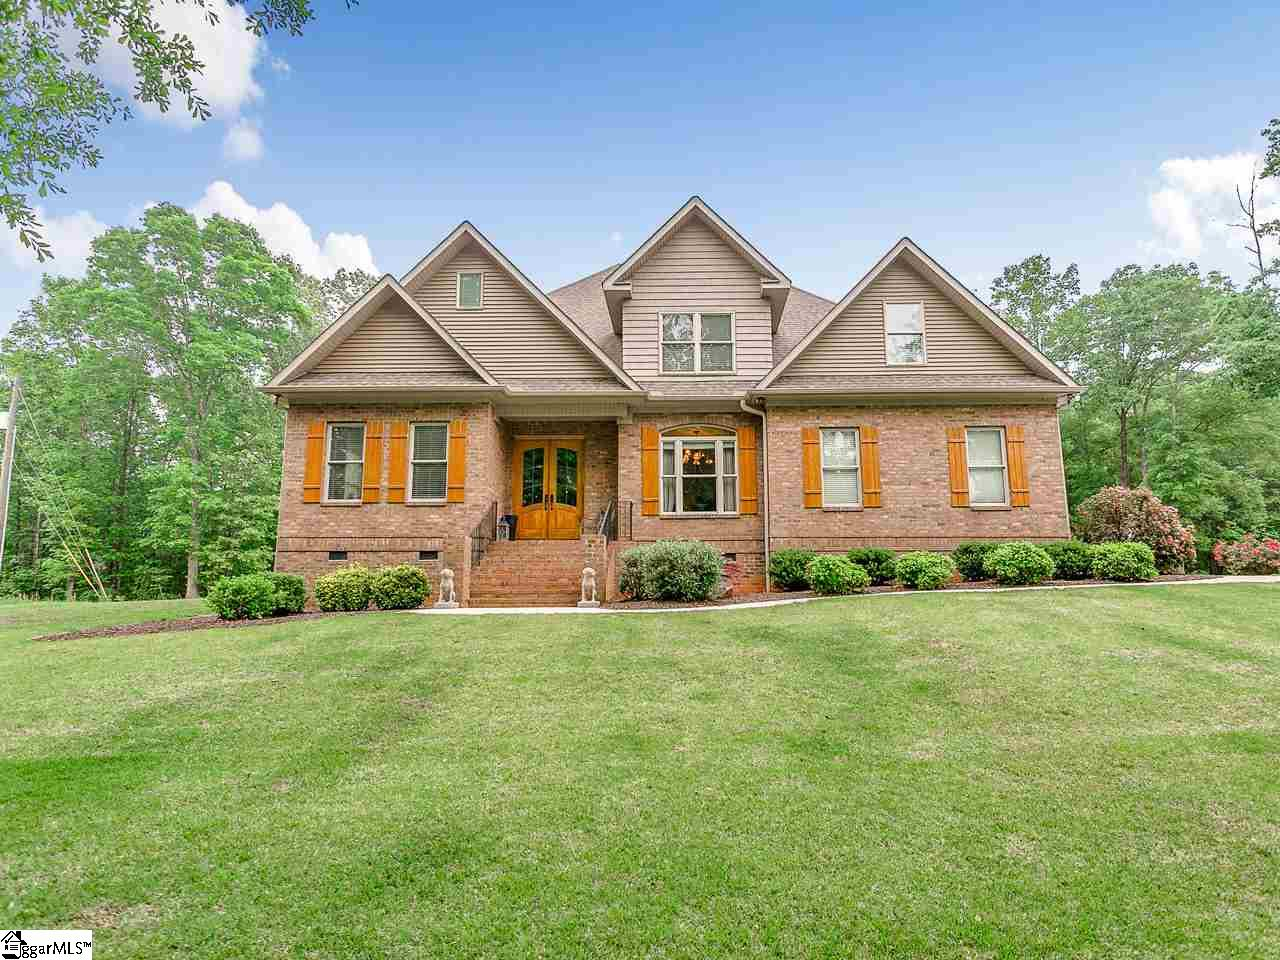 121 Old River Pelzer, SC 29669